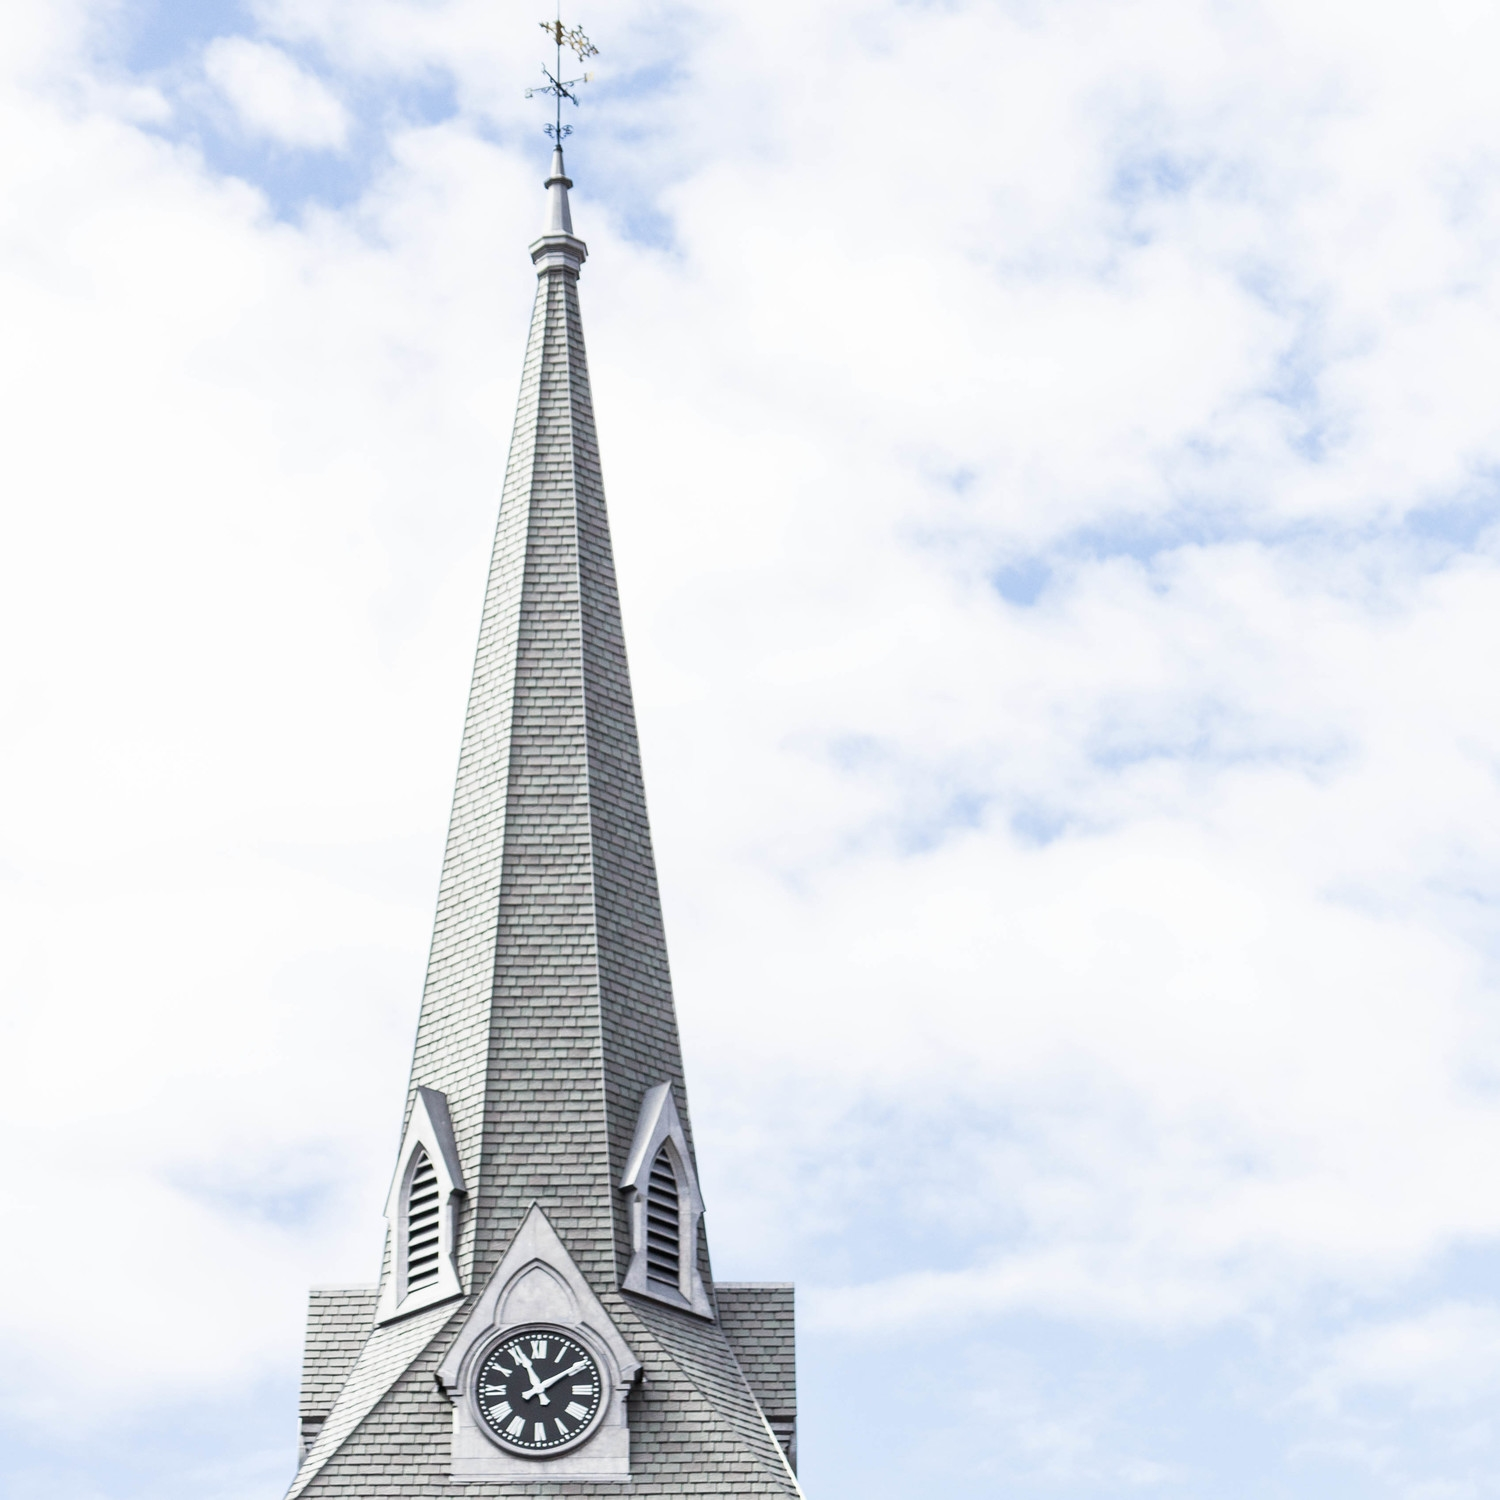 Steeple, Boston